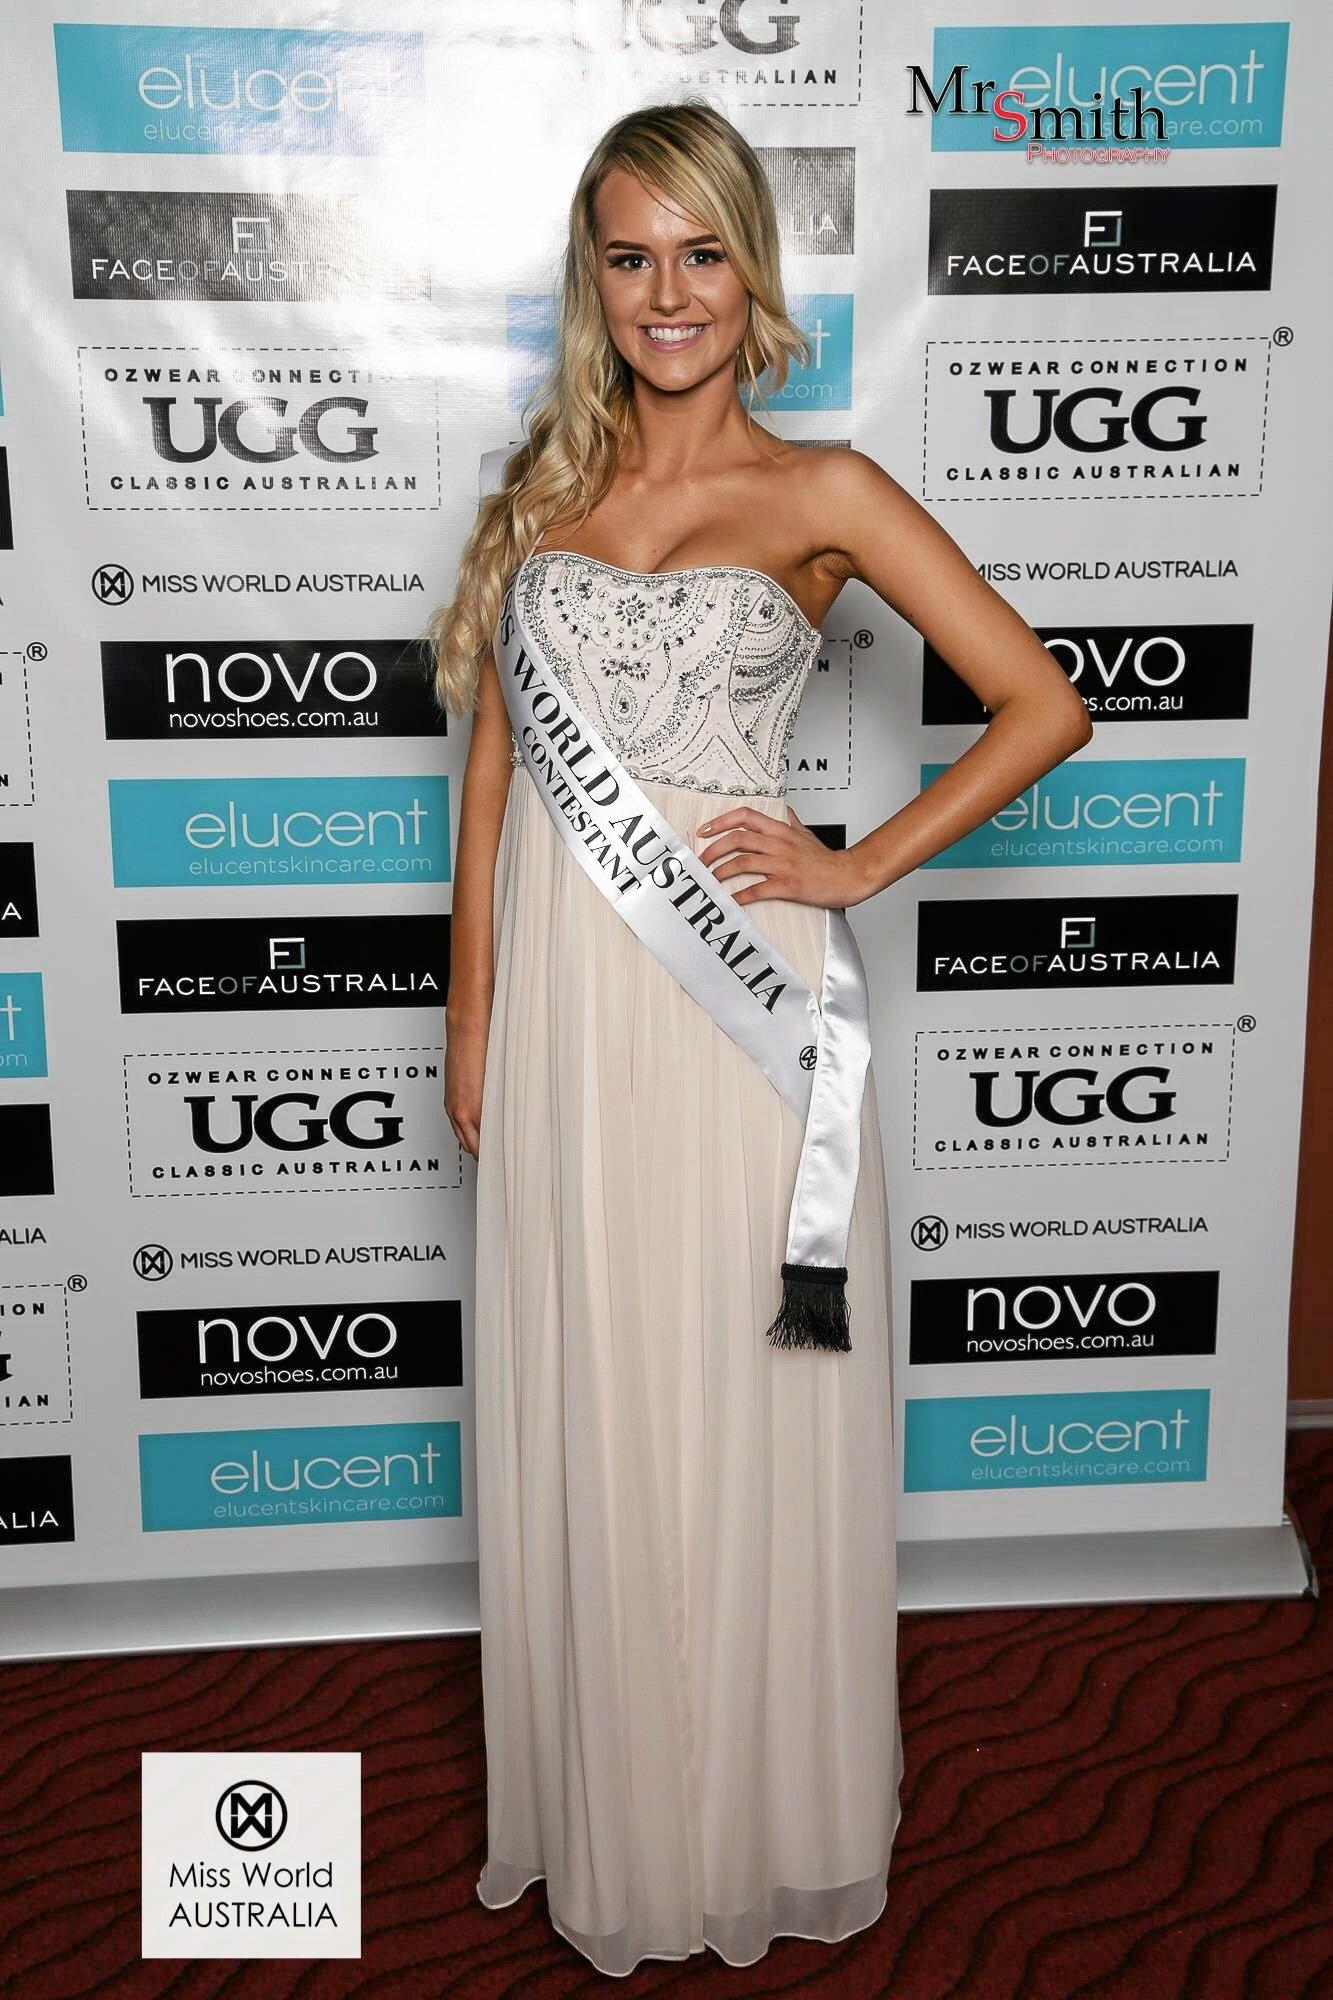 ON A MISSION: Carlie Shipman will compete in the Queensland finals of Miss World Australia.